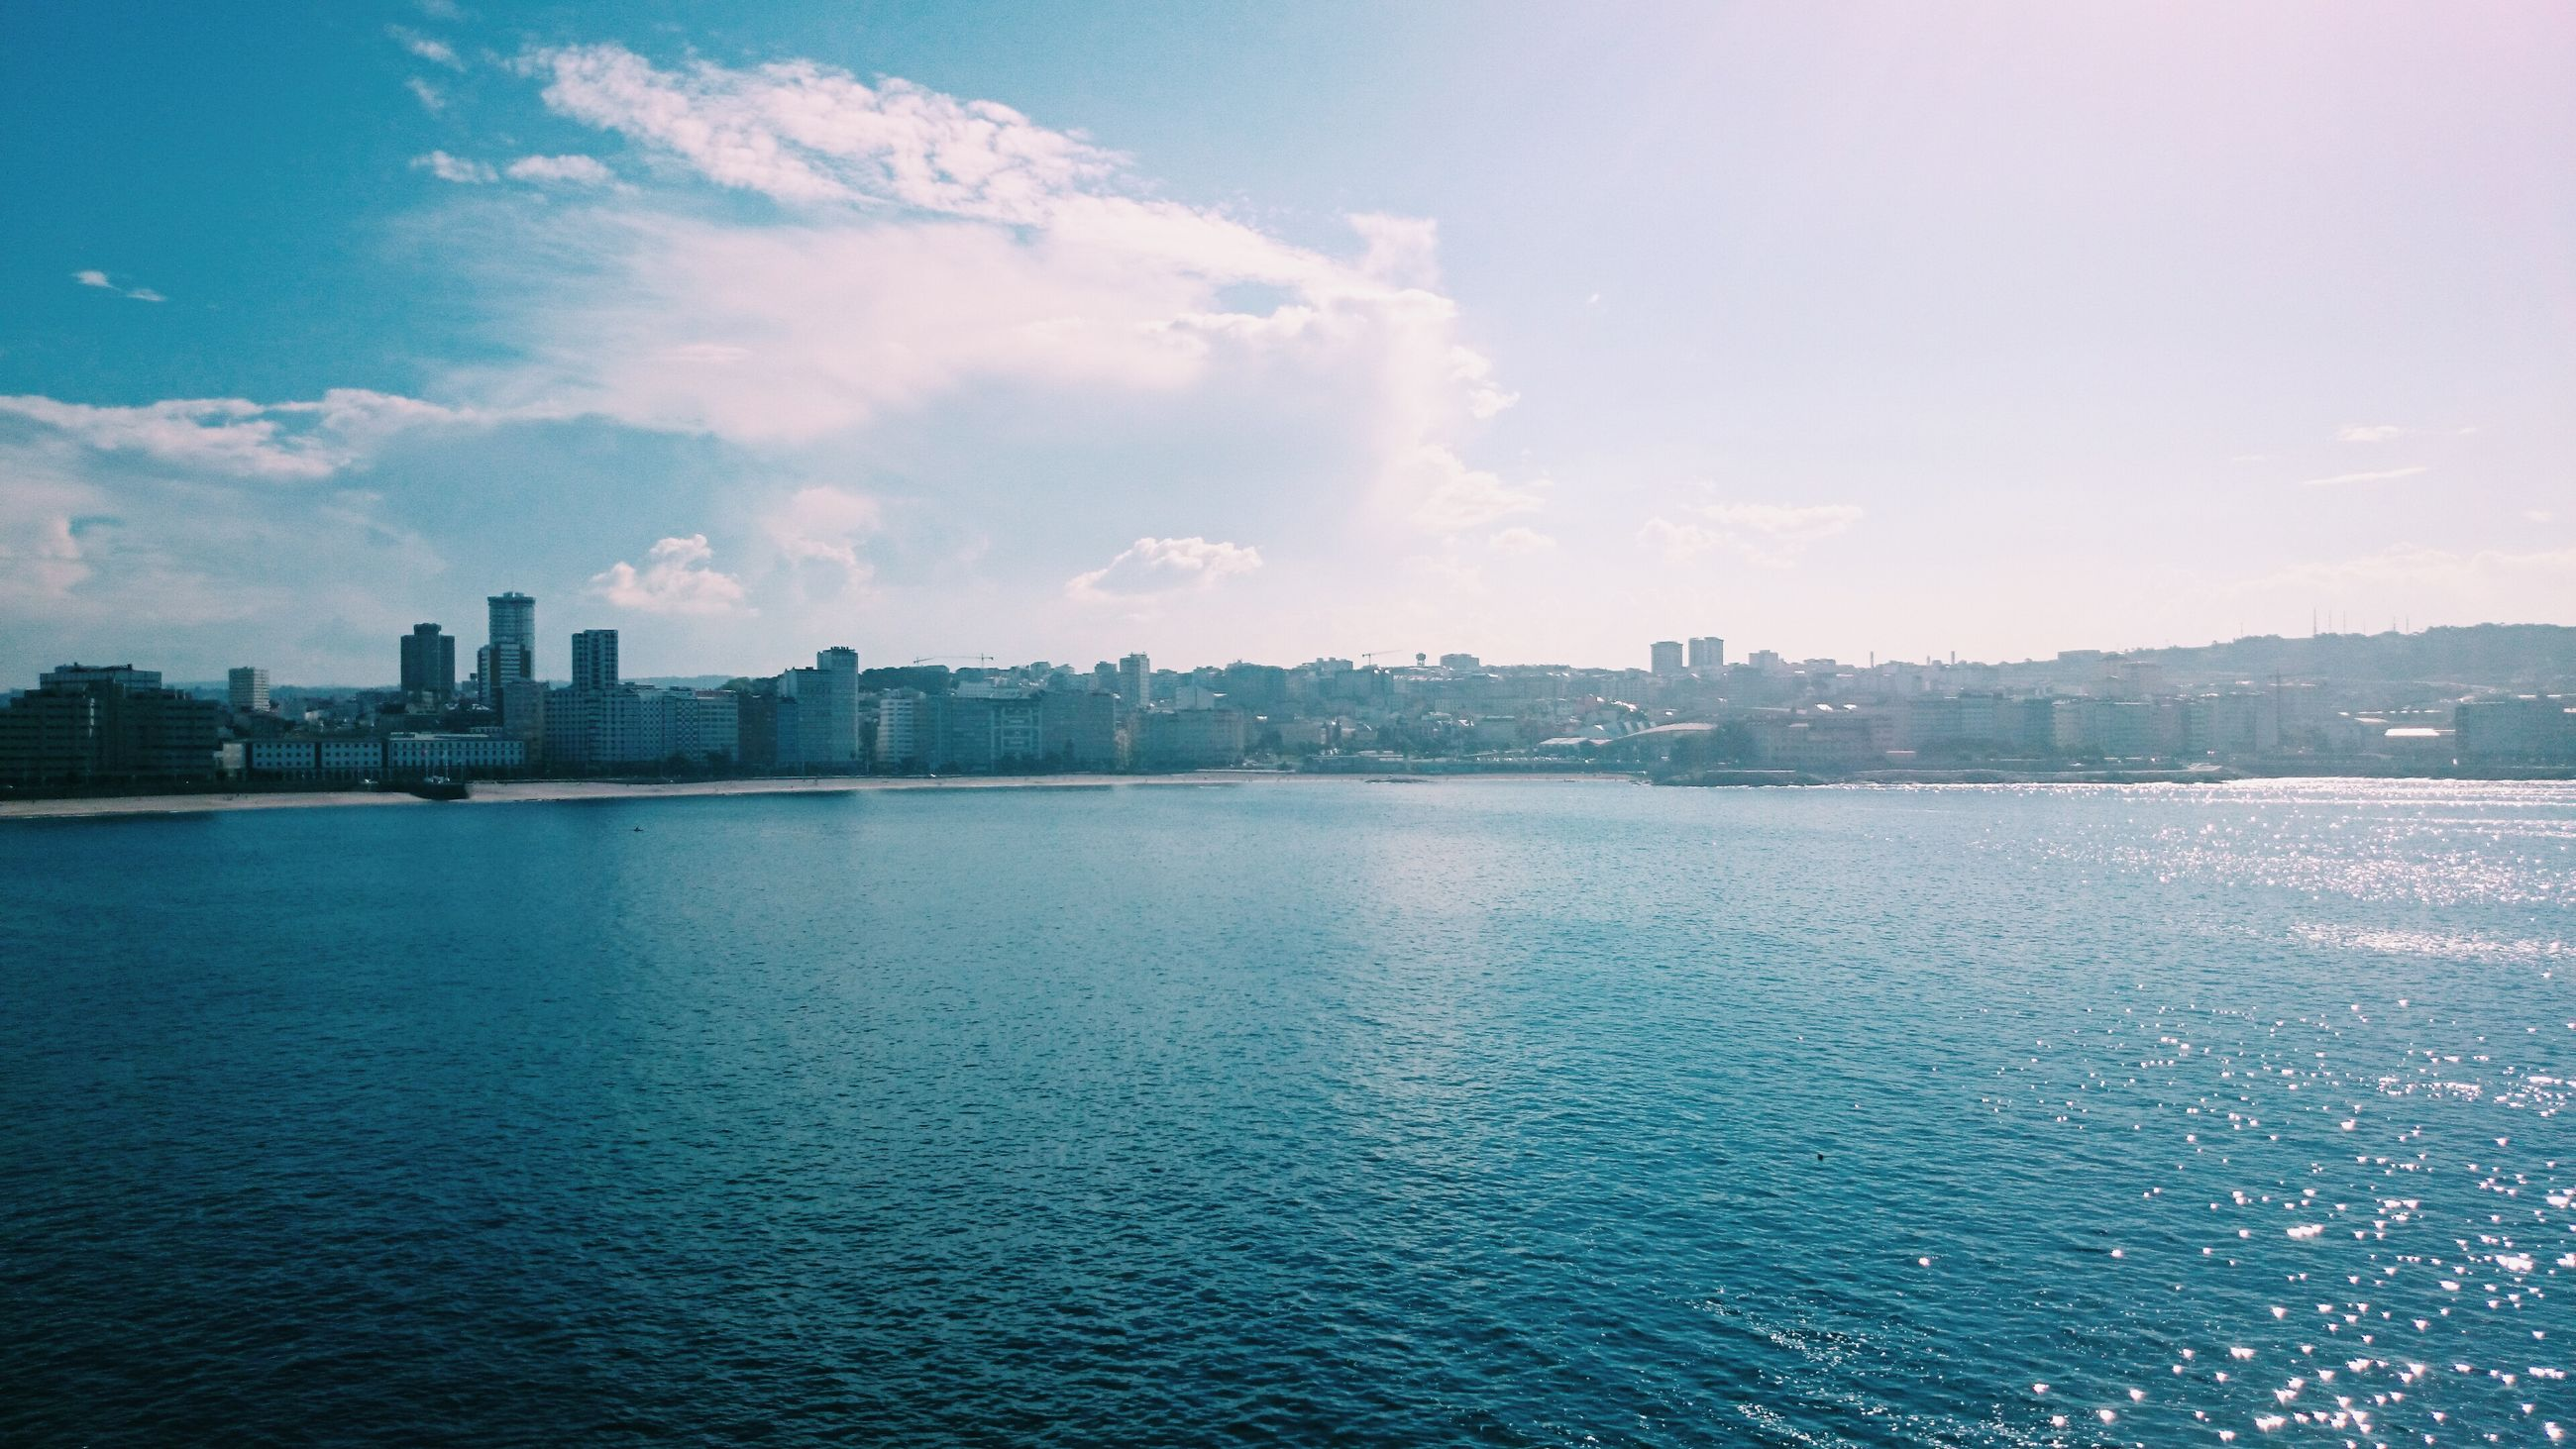 waterfront, water, building exterior, architecture, built structure, sky, sea, rippled, city, river, cityscape, scenics, tranquility, tranquil scene, blue, nature, cloud, cloud - sky, no people, beauty in nature